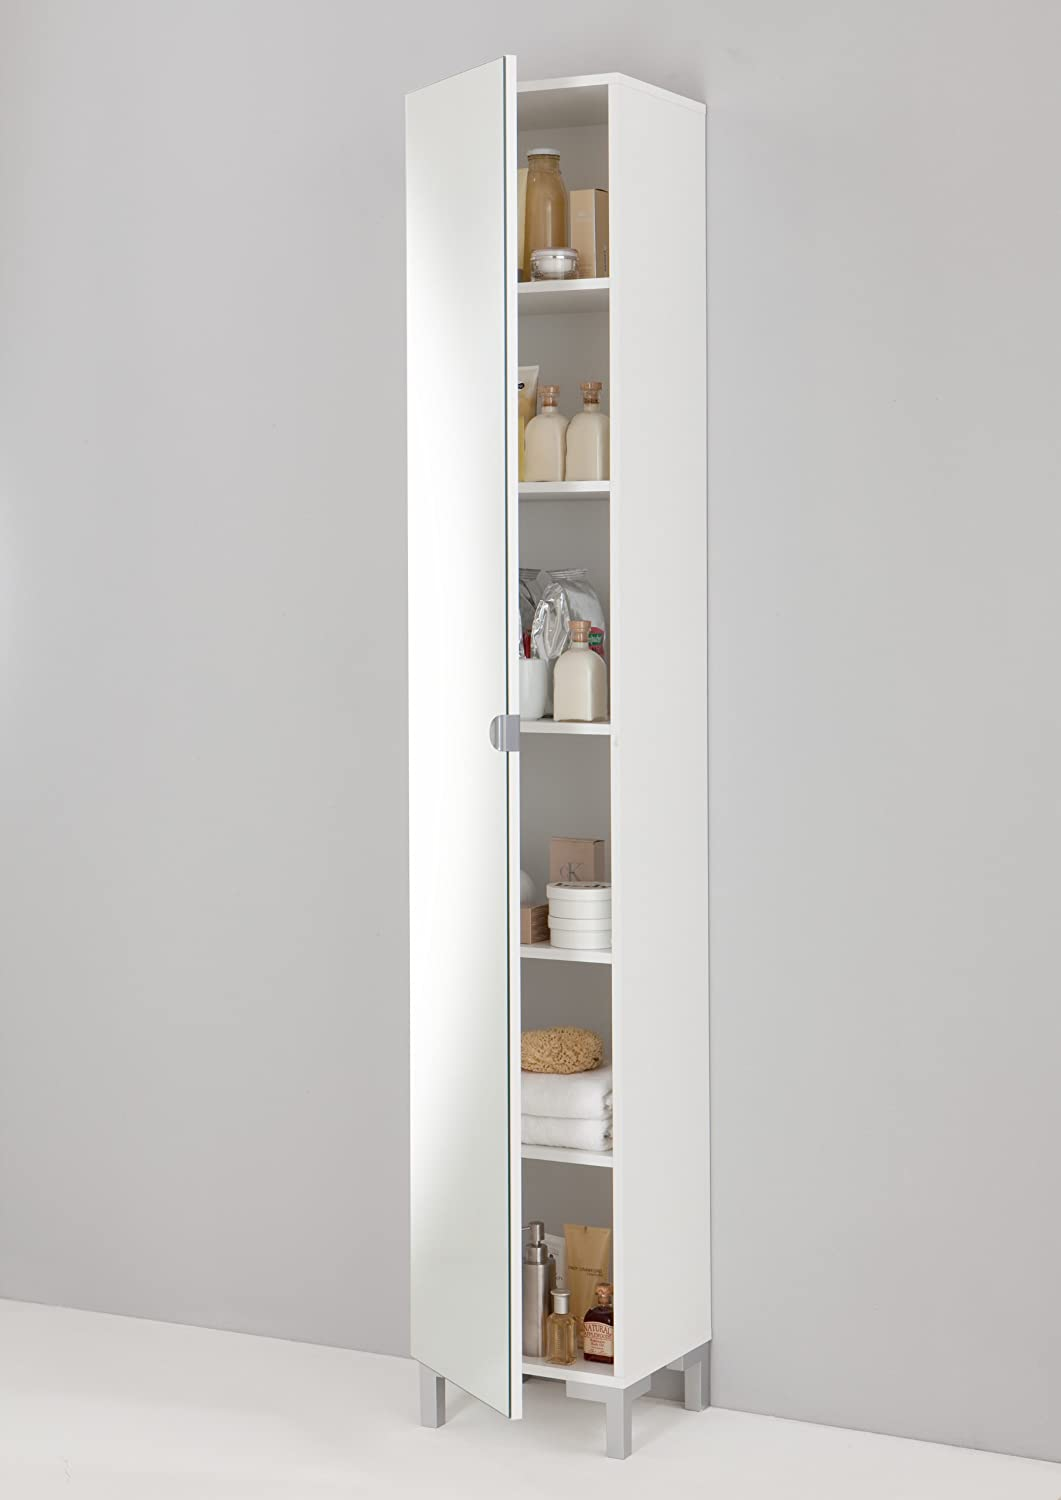 GermanicaTM TARRA Floor Standing Tall Cabinet Tallboy In White Finish With Mirror Door Amazoncouk Kitchen Home